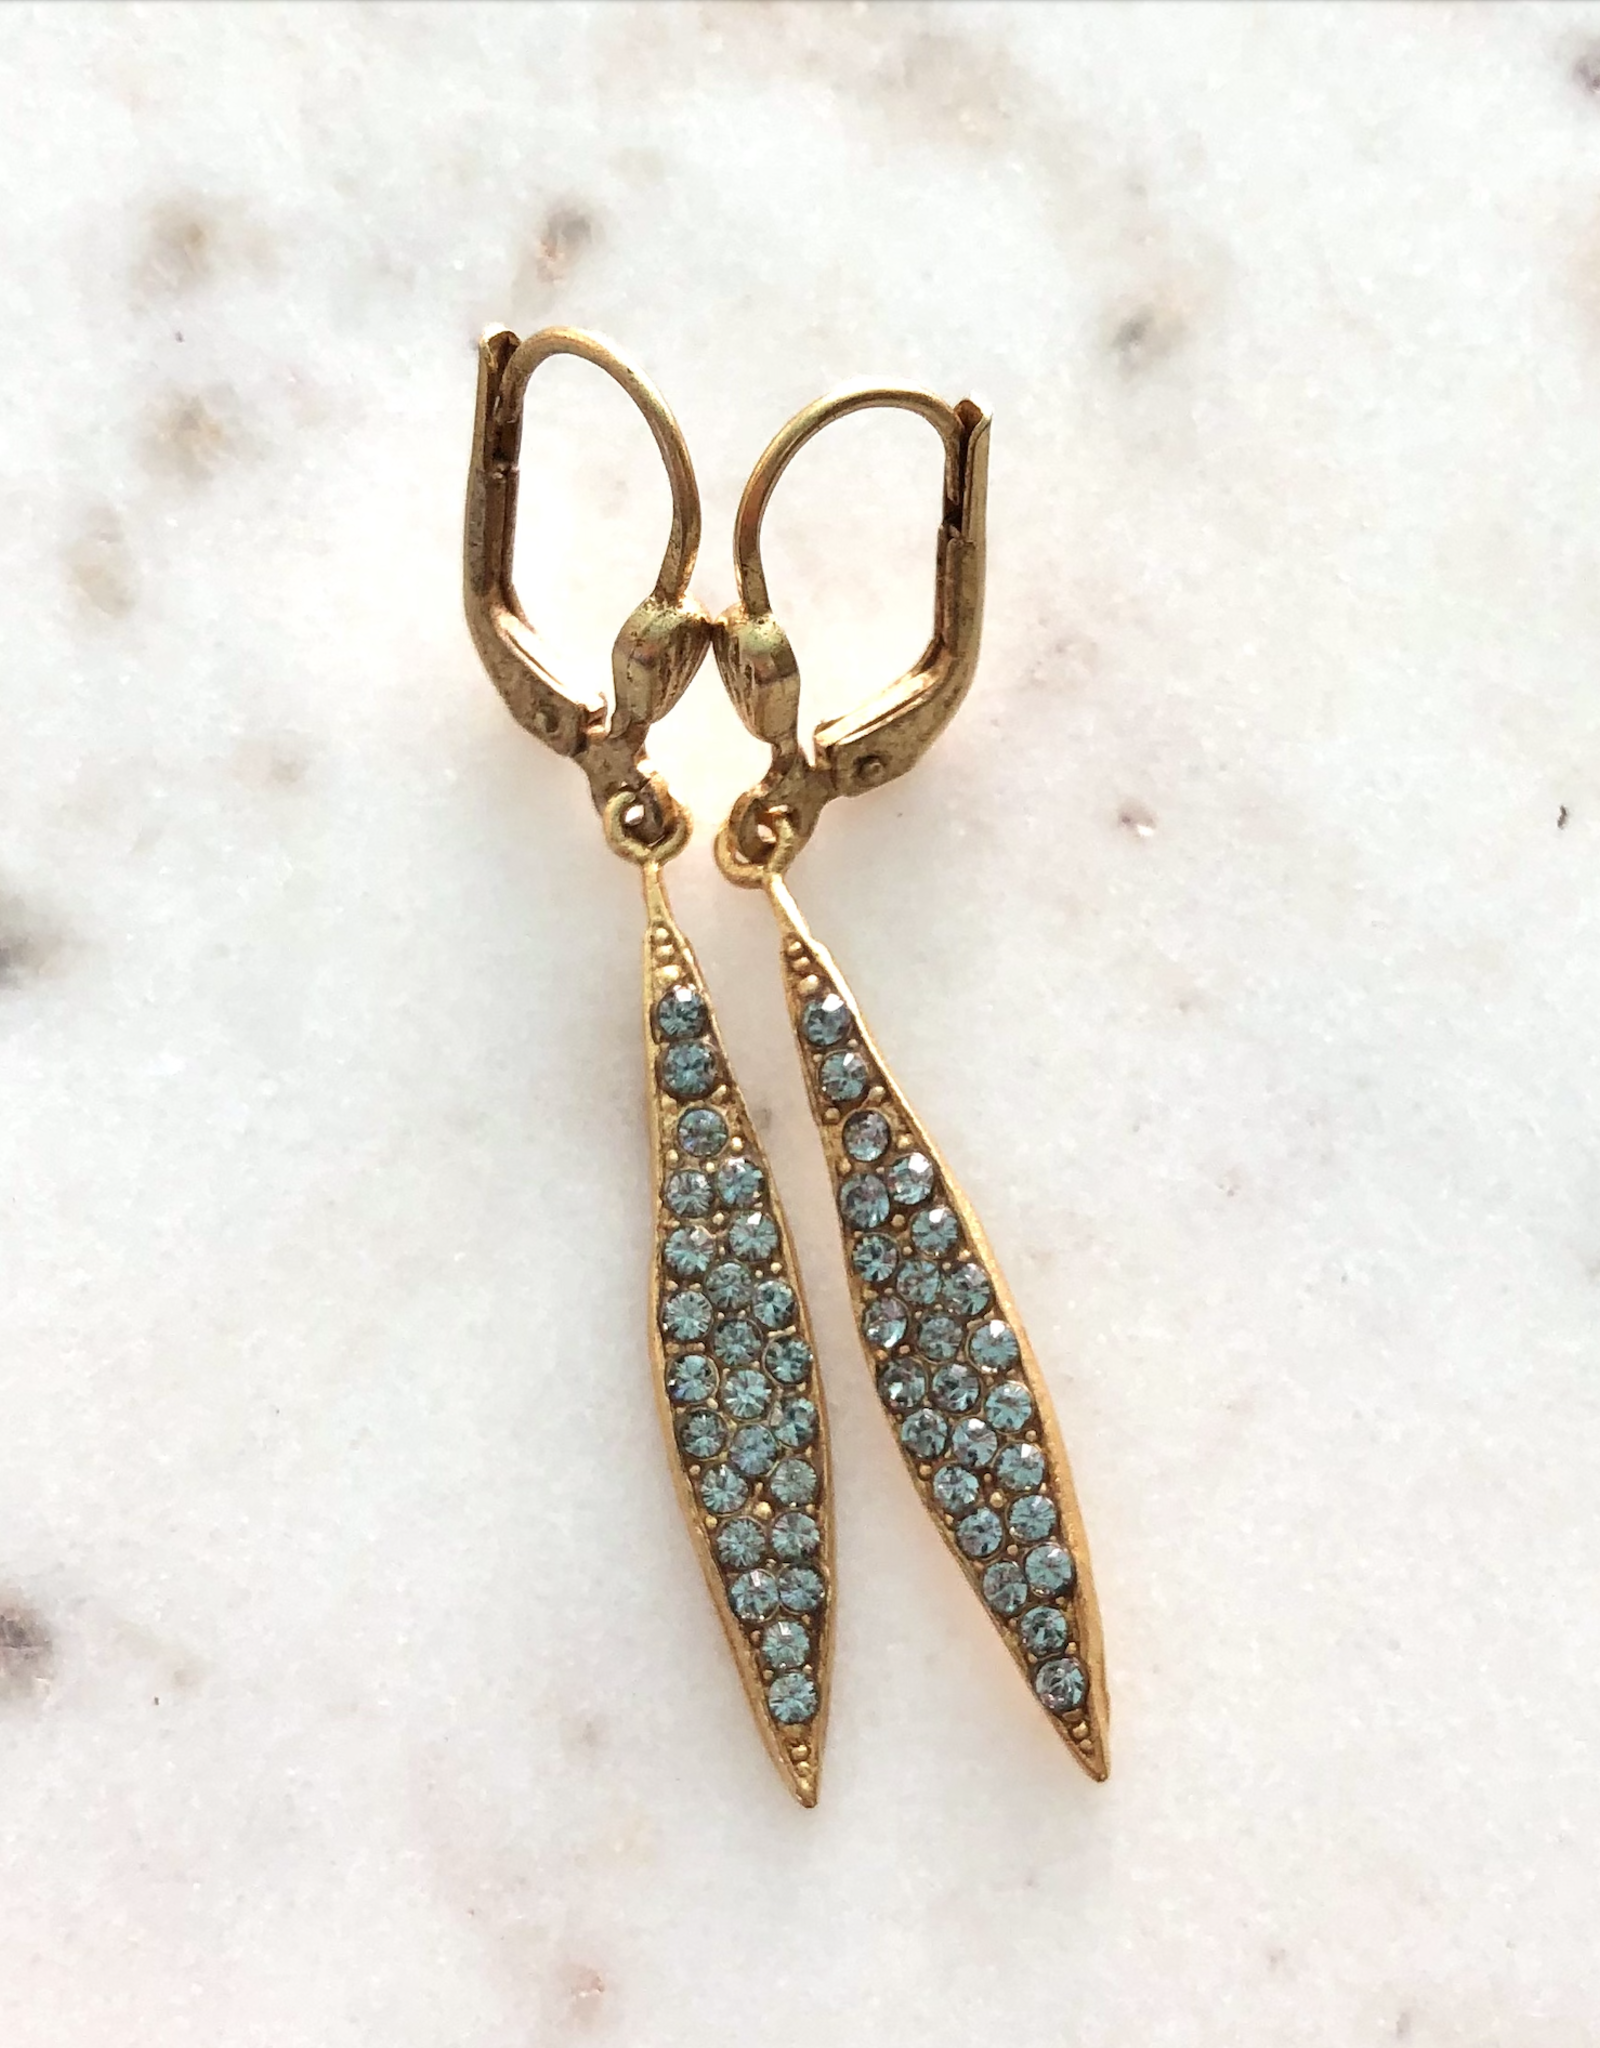 LA VIE PARISIENNE INC EARRING SPEAR WITH CRYSTALS ON FRENCH HOOK GOLD